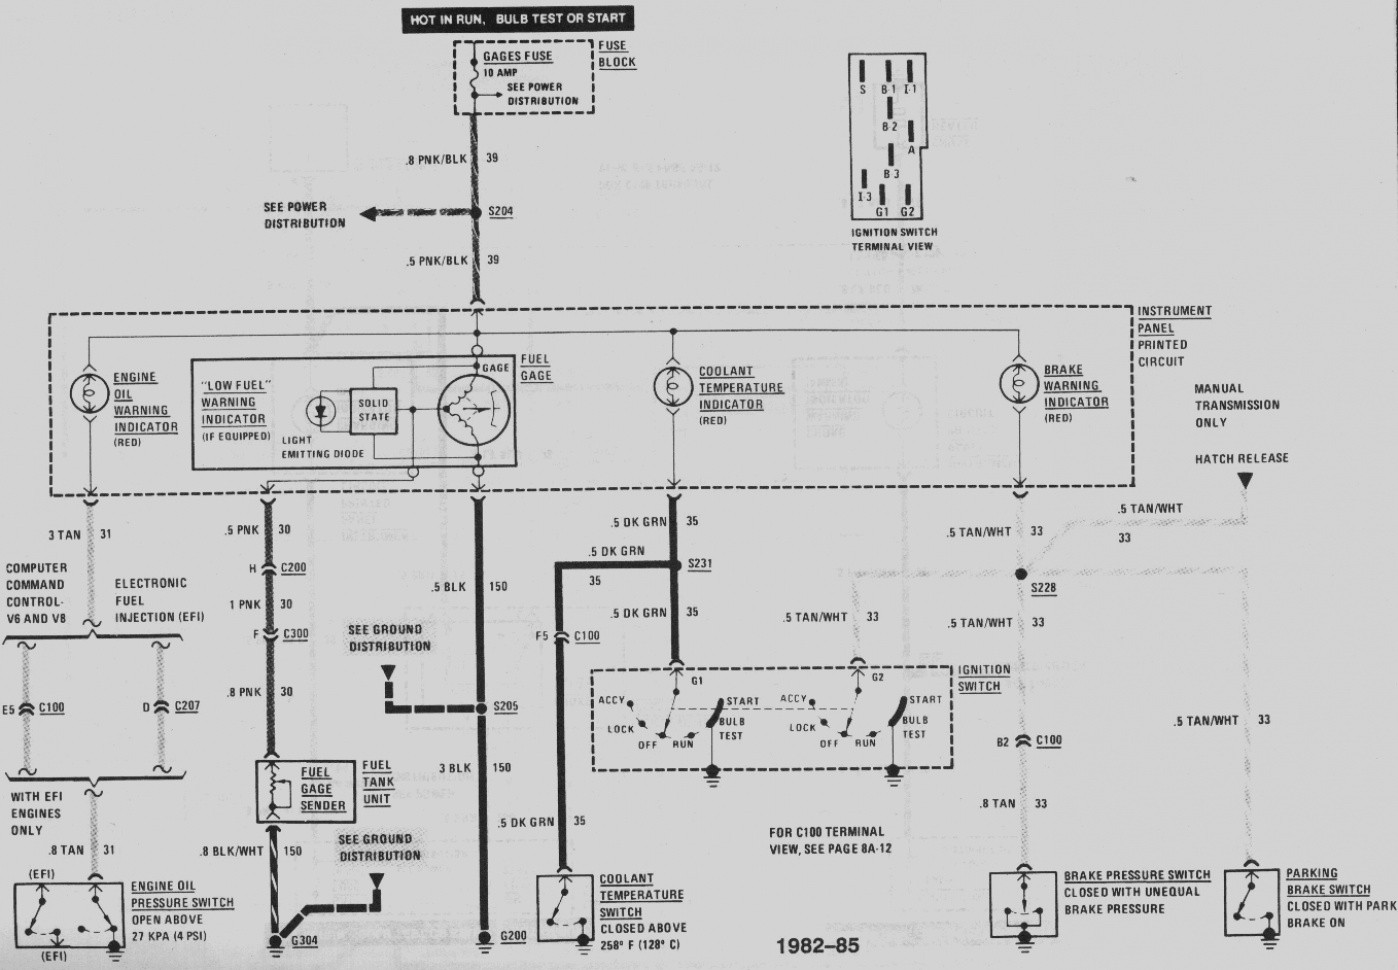 gas gauge diagram custom wiring diagram u2022 rh littlewaves co Gas Gauge Wiring Diagram Gas Gauge for 2000 Blazer